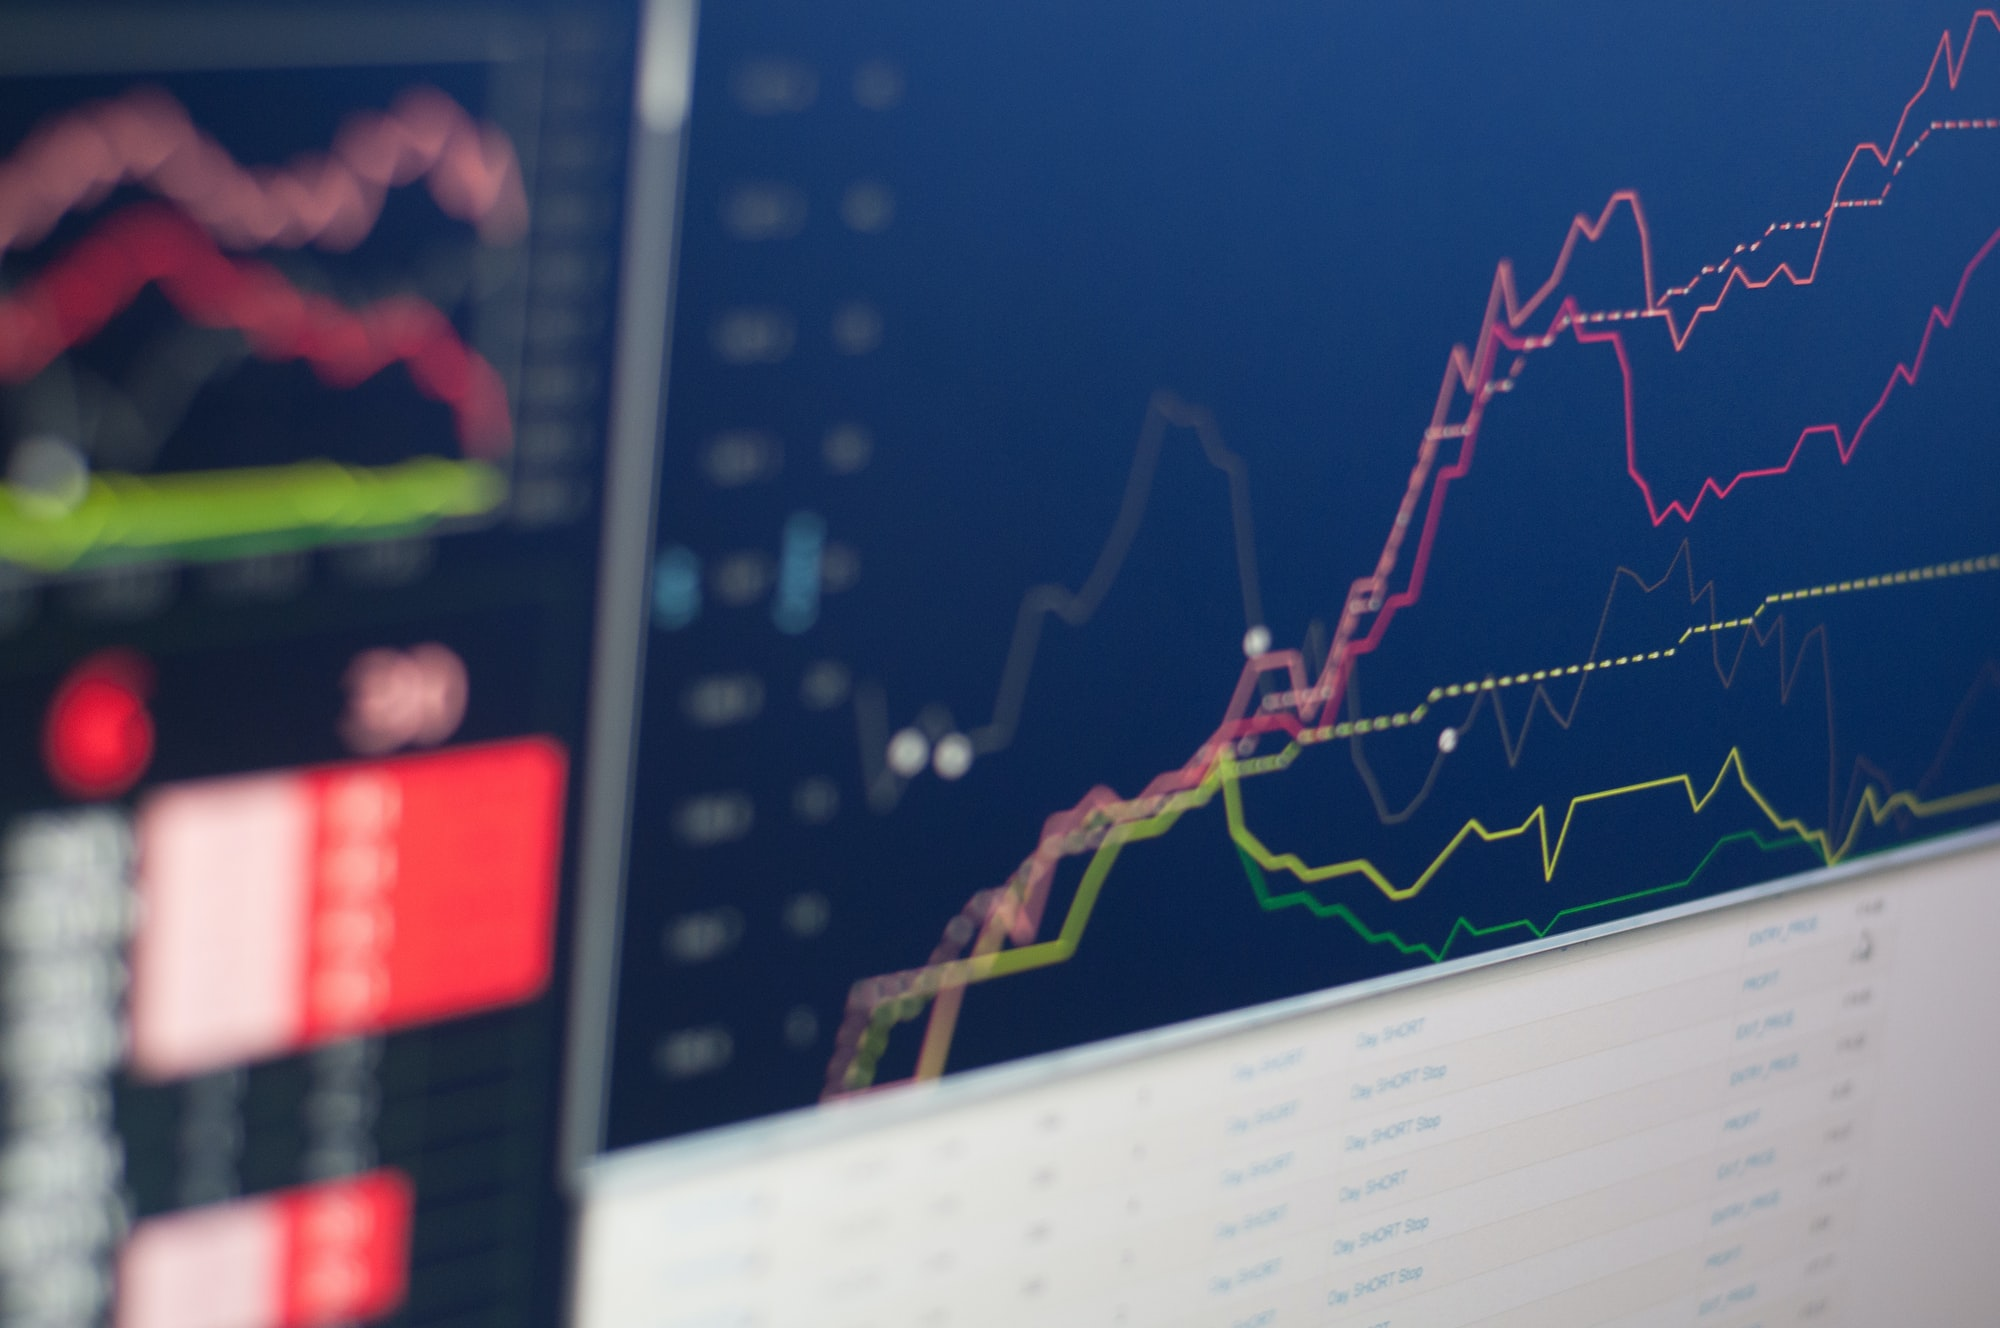 Stock Charts during a live trading session